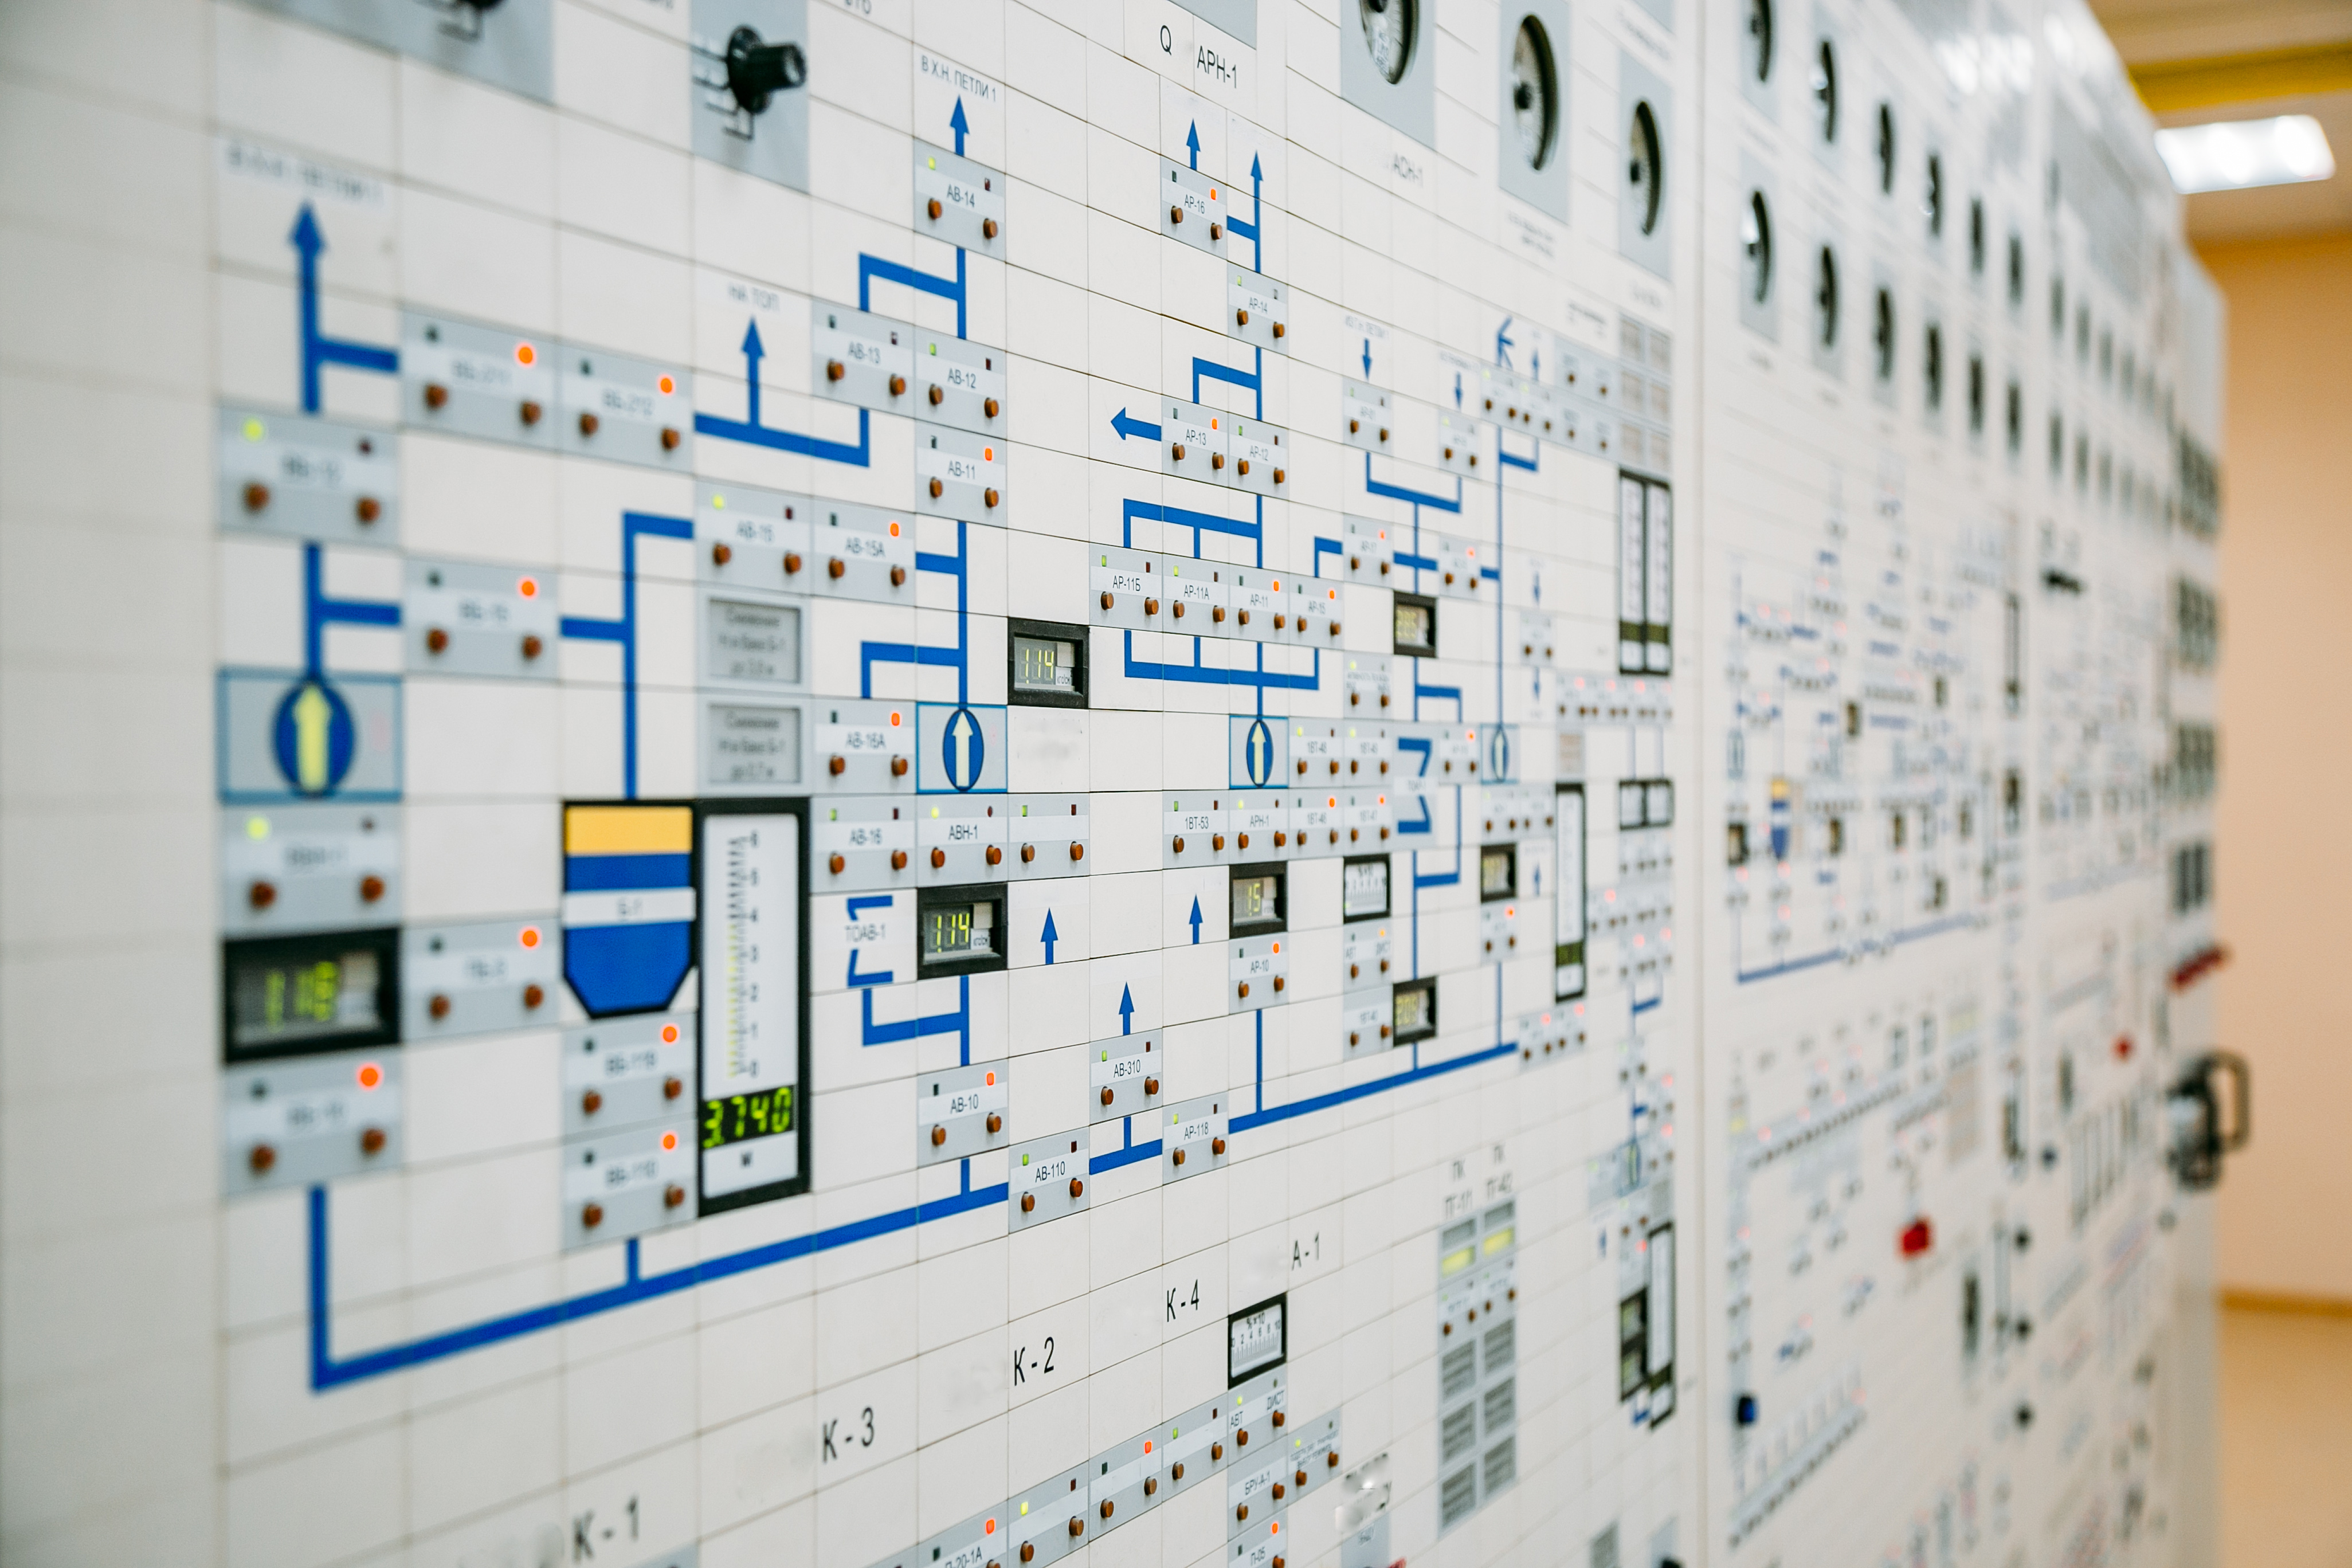 nuclear power reactor operators in front of main control pannel